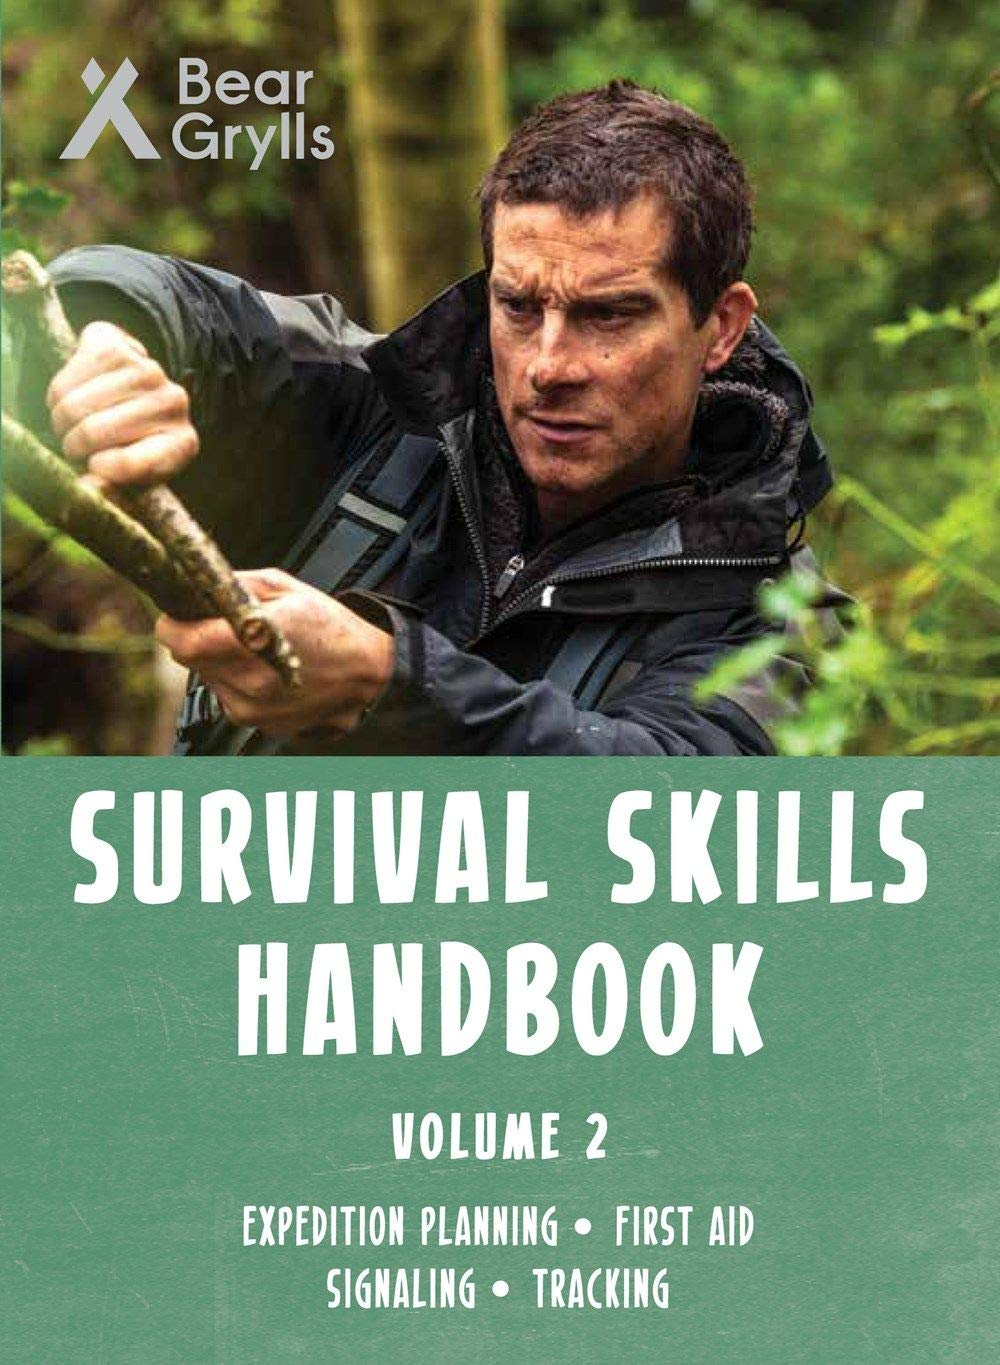 Bear Grylls Survival Skills Handbook Vol 2